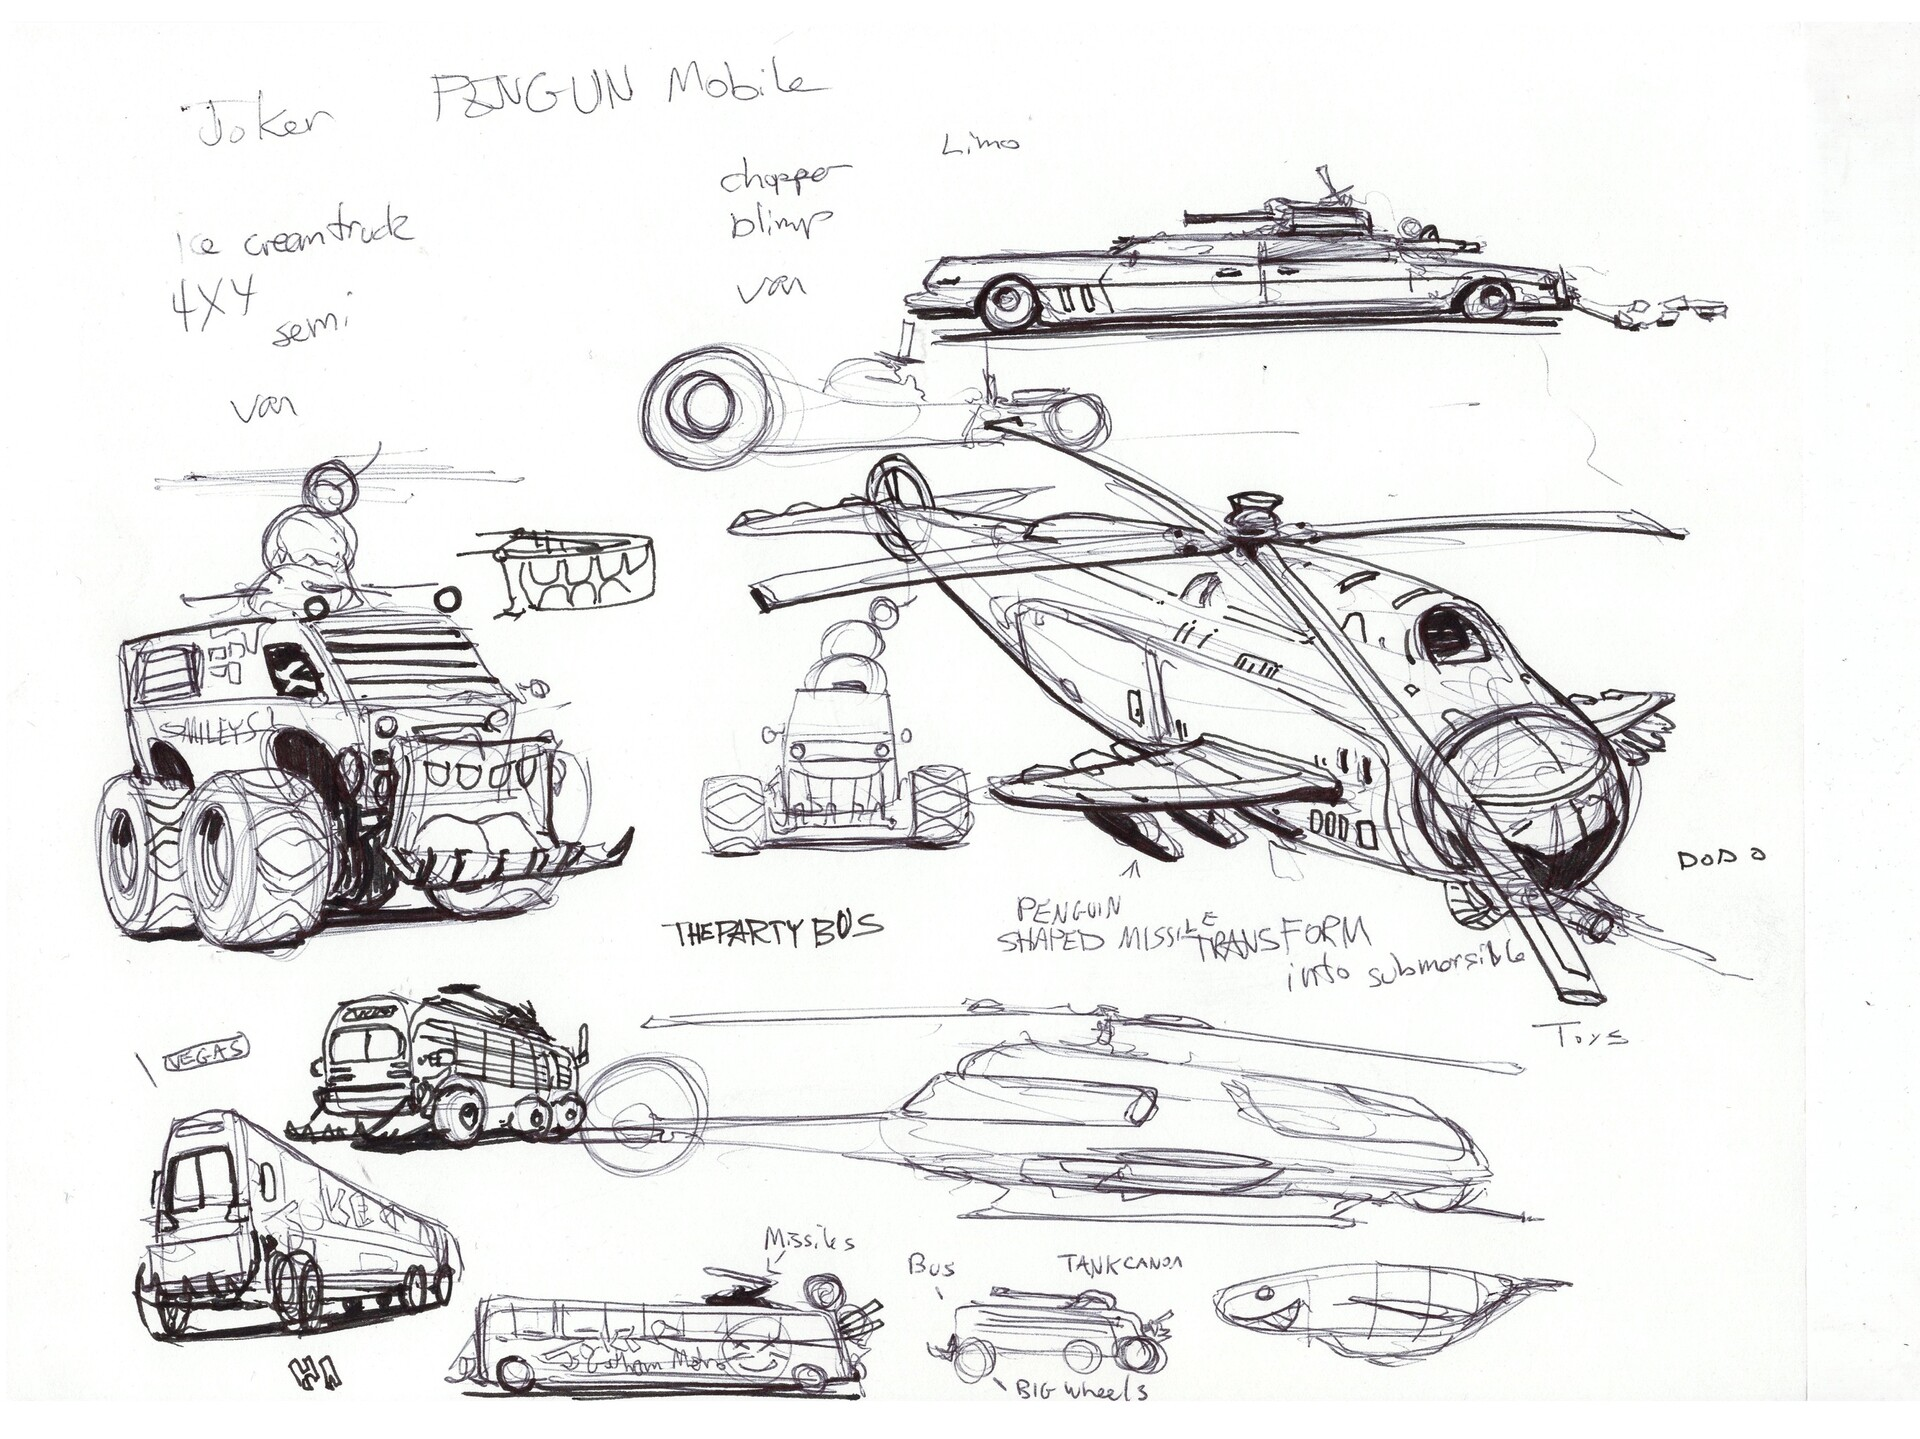 Brainstorming vehicle designs for the joker and penguin in my version of Gotham.